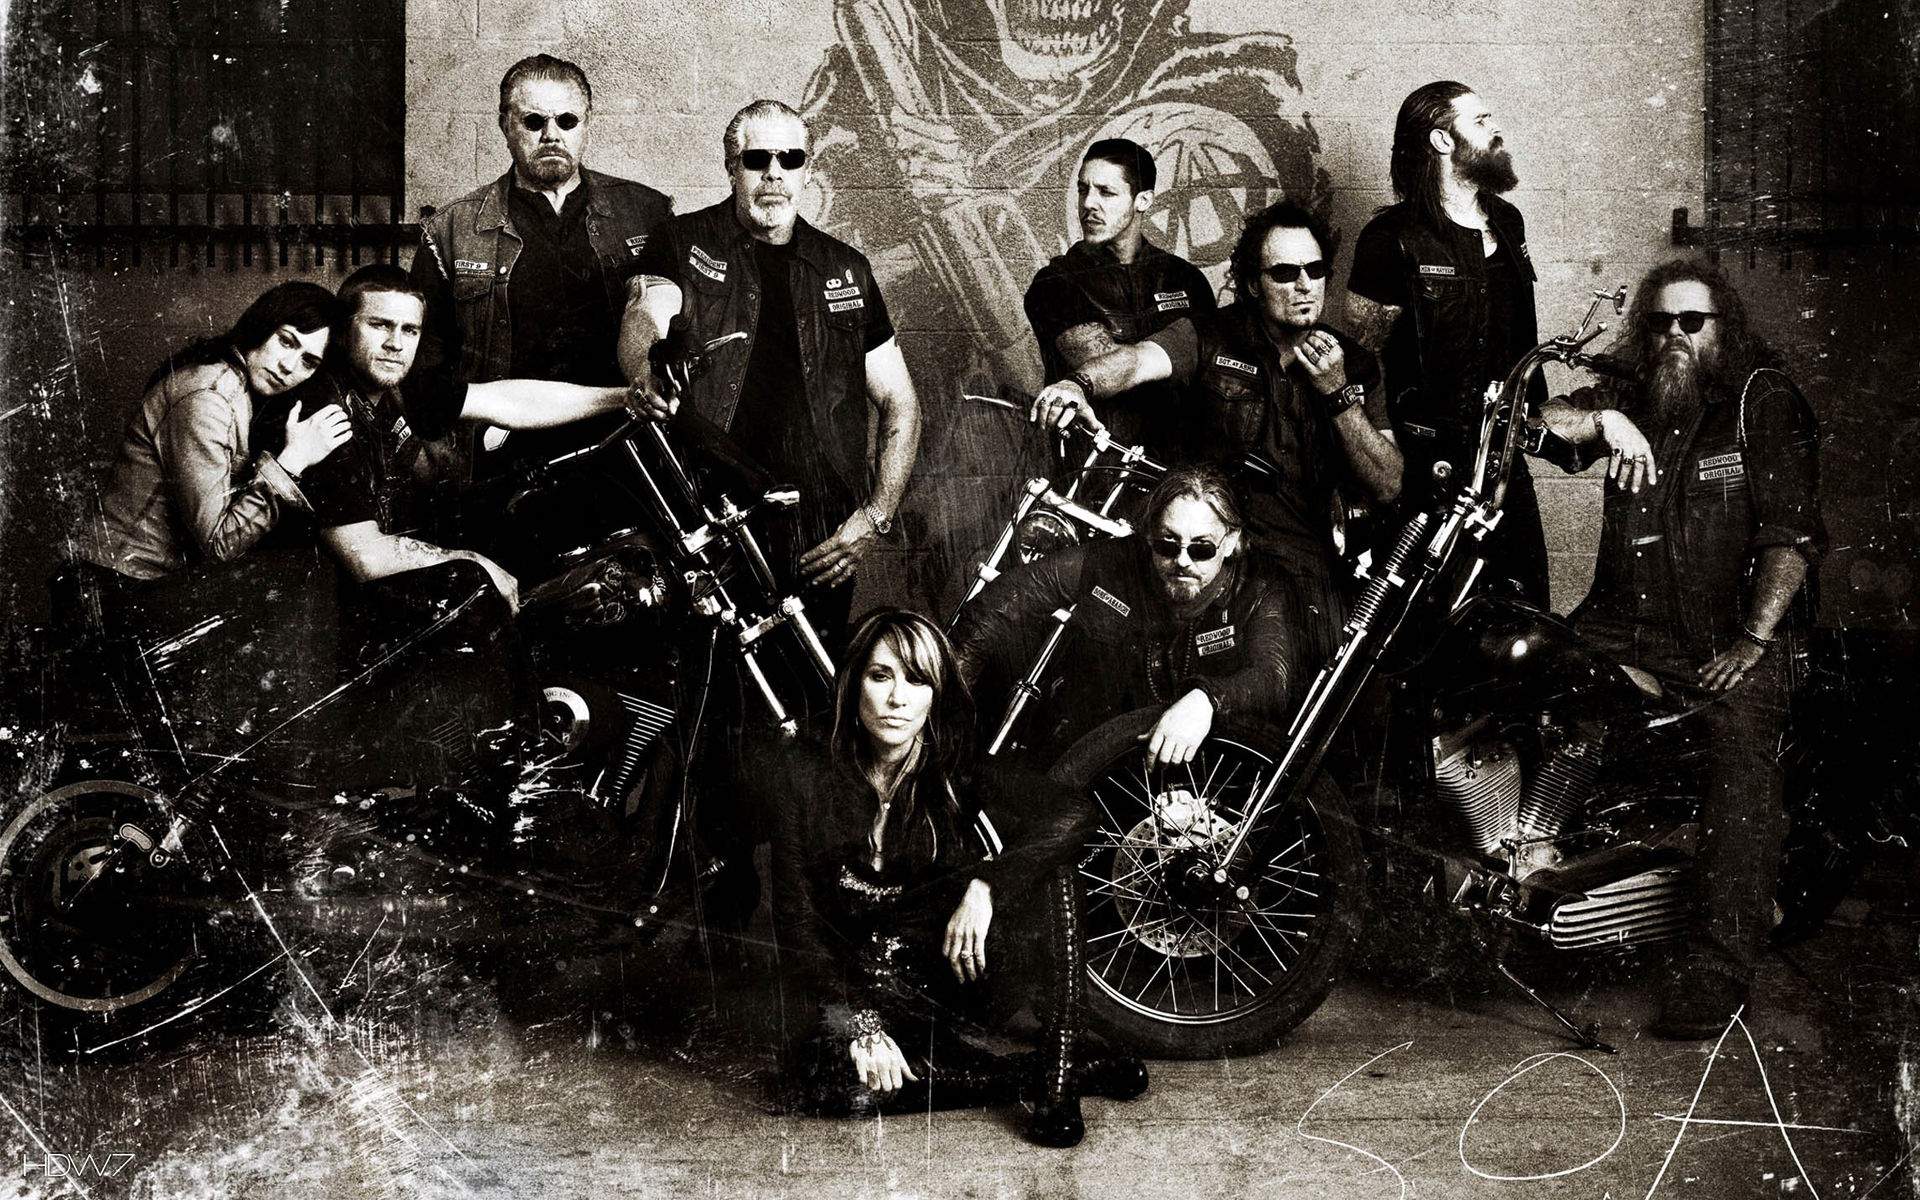 sons of anarchy tv series show